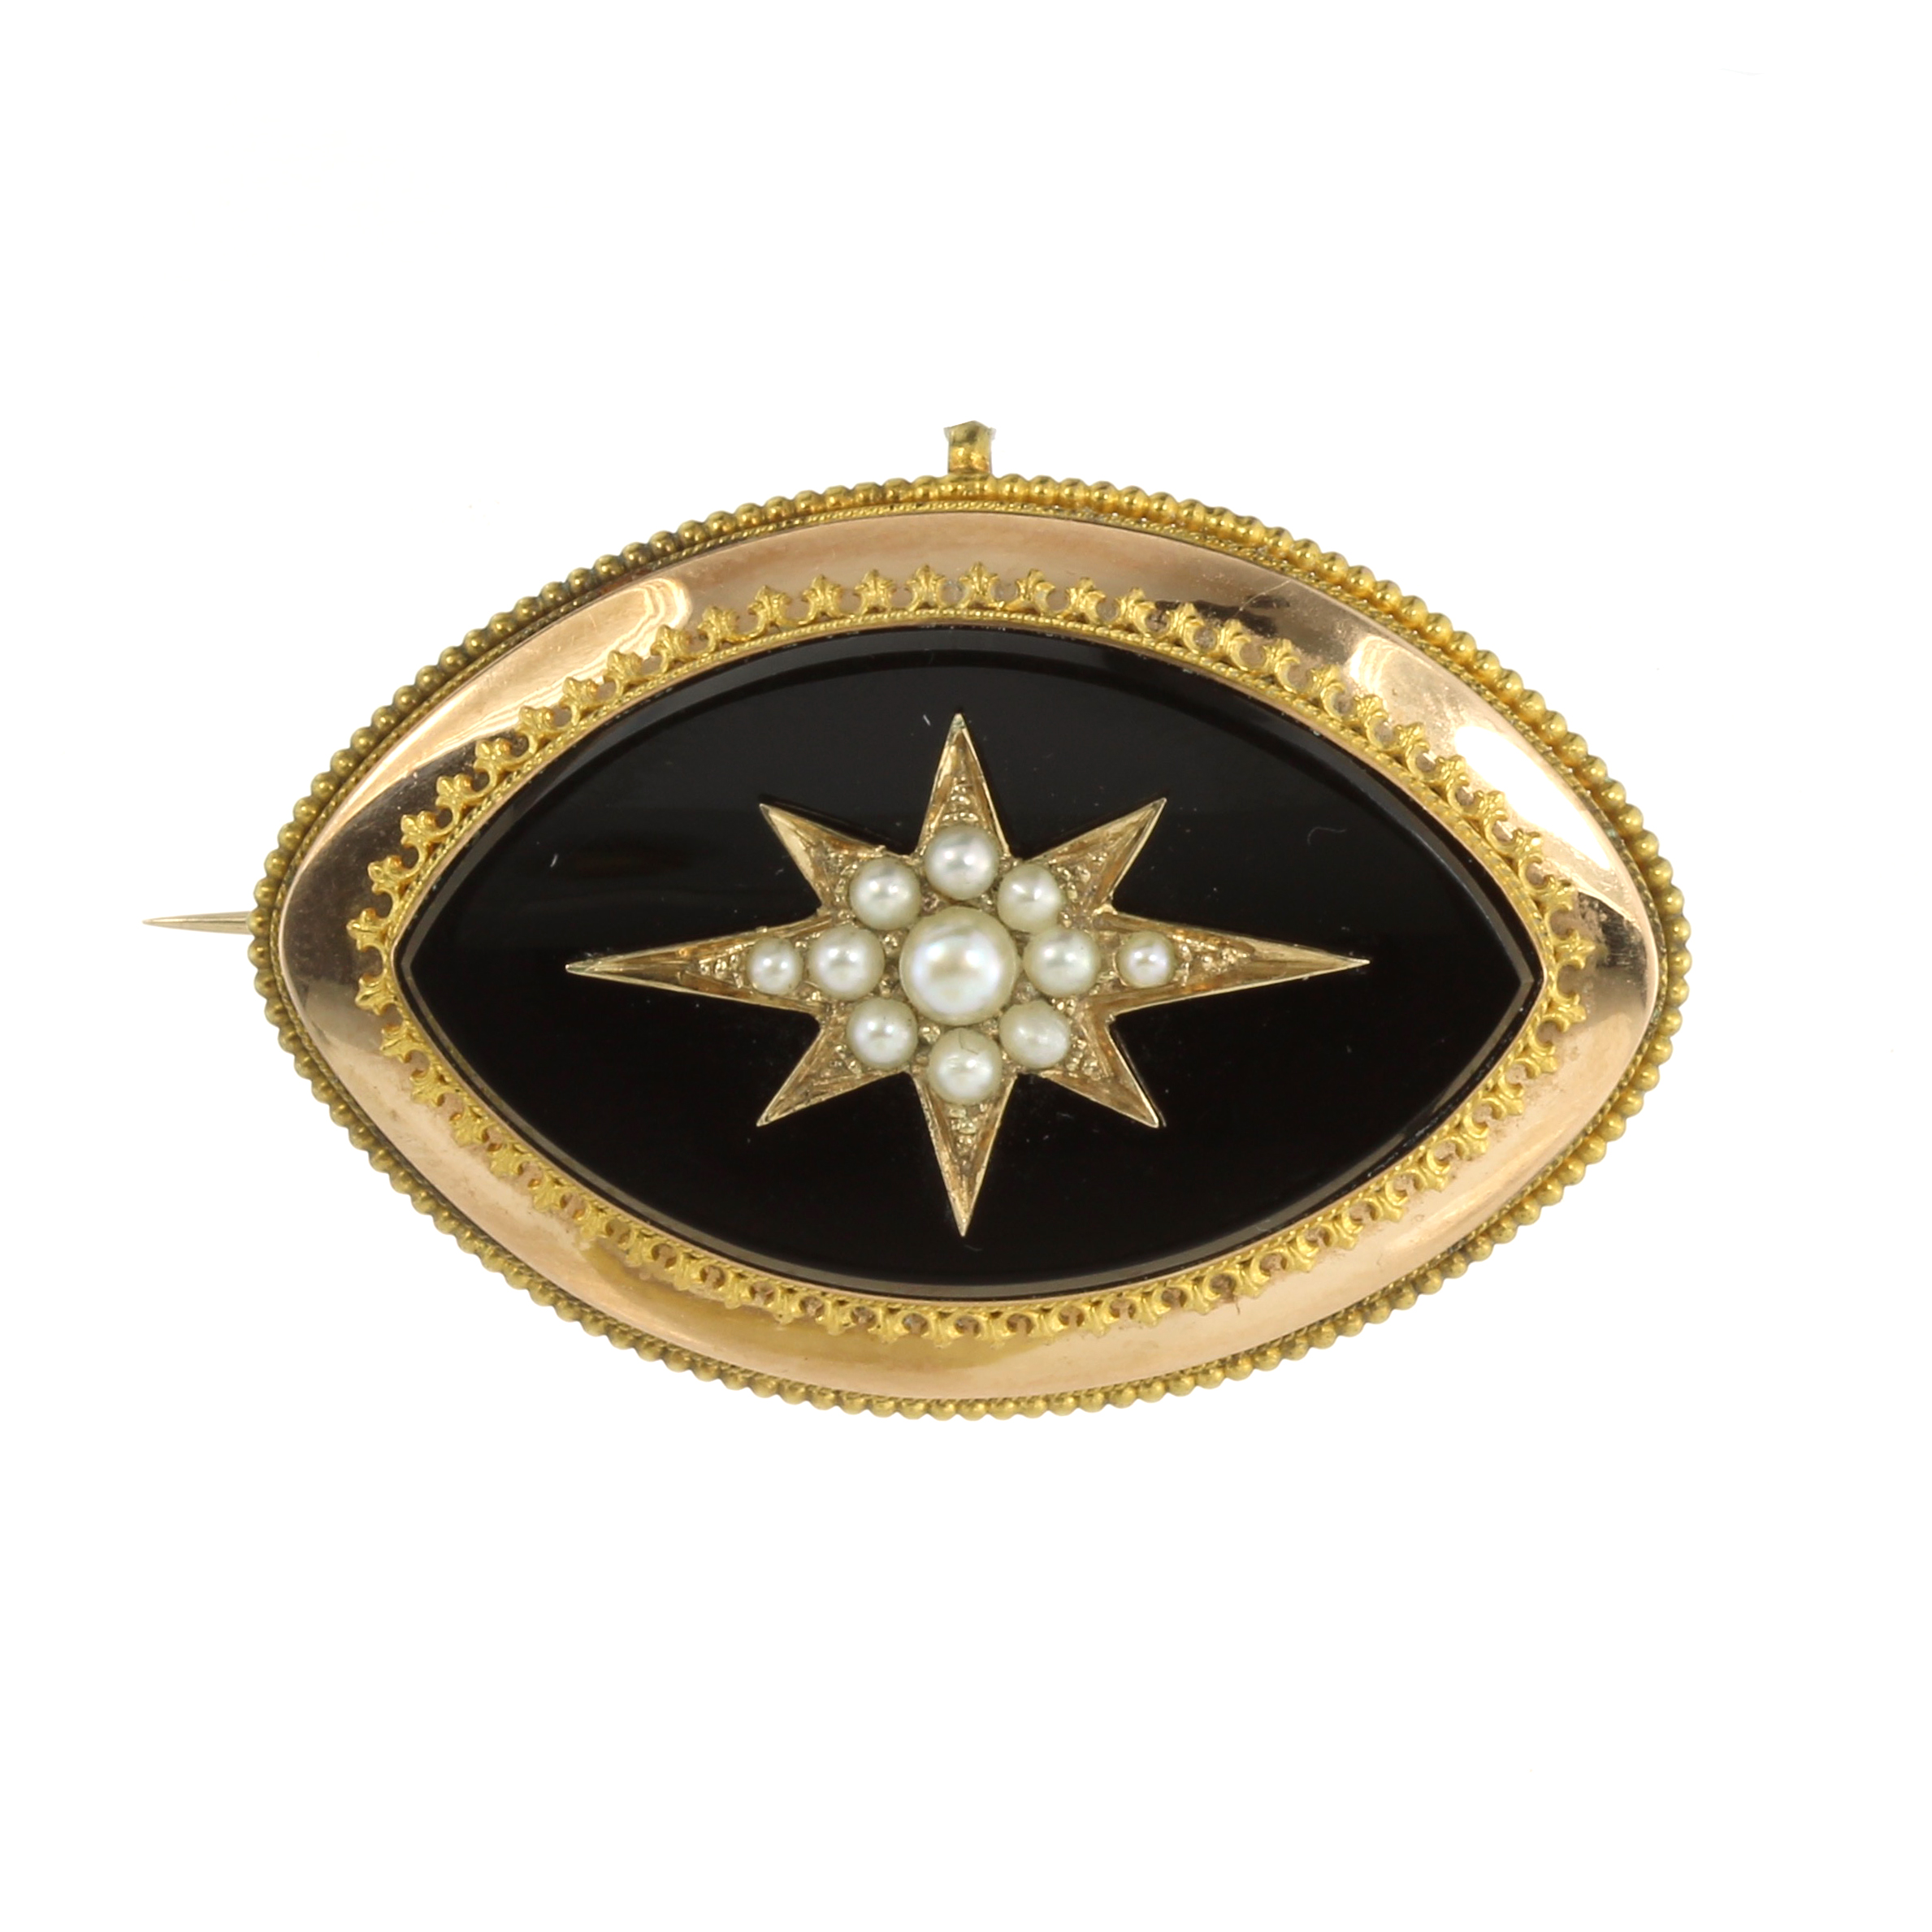 Los 27 - AN ANTIQUE PEARL AND ONYX HAIRWORK MOURNING BROOCH, LATE 19TH CENTURY of navette form, set with a